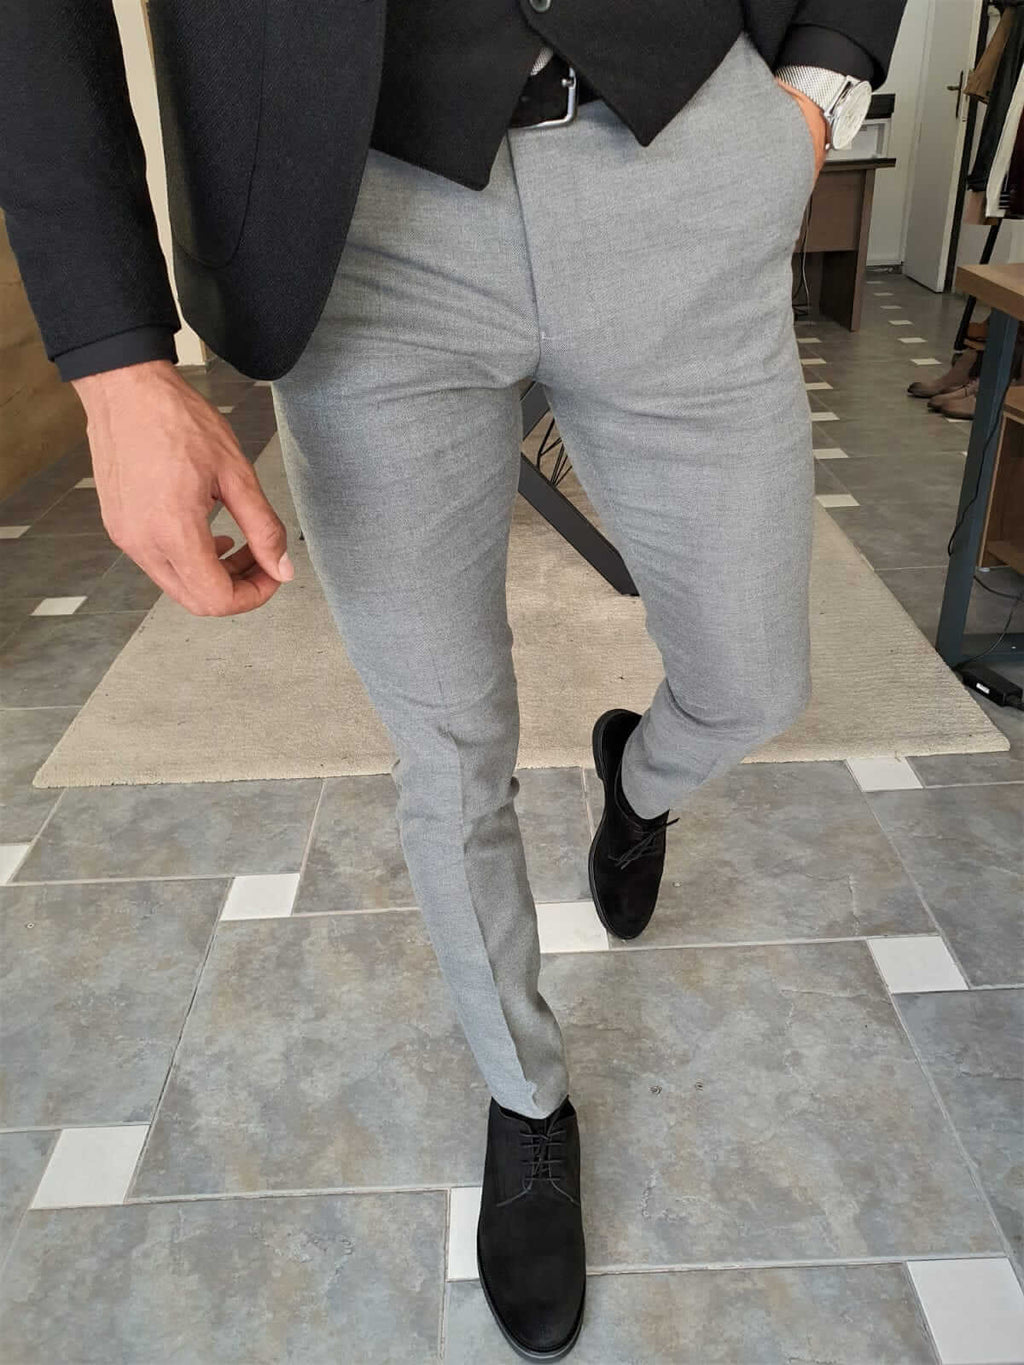 FIT GRAY COTTON PANTS - Hollo Men